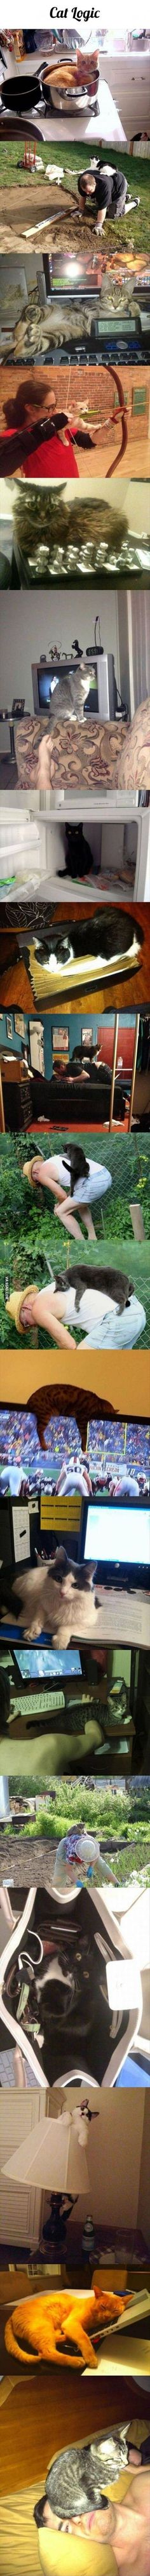 Sometimes you just give up and let it happen: Funny Animals, Kitty Cats, Cat Logic, Funny Cats, Crazy Cat, Cat Lady